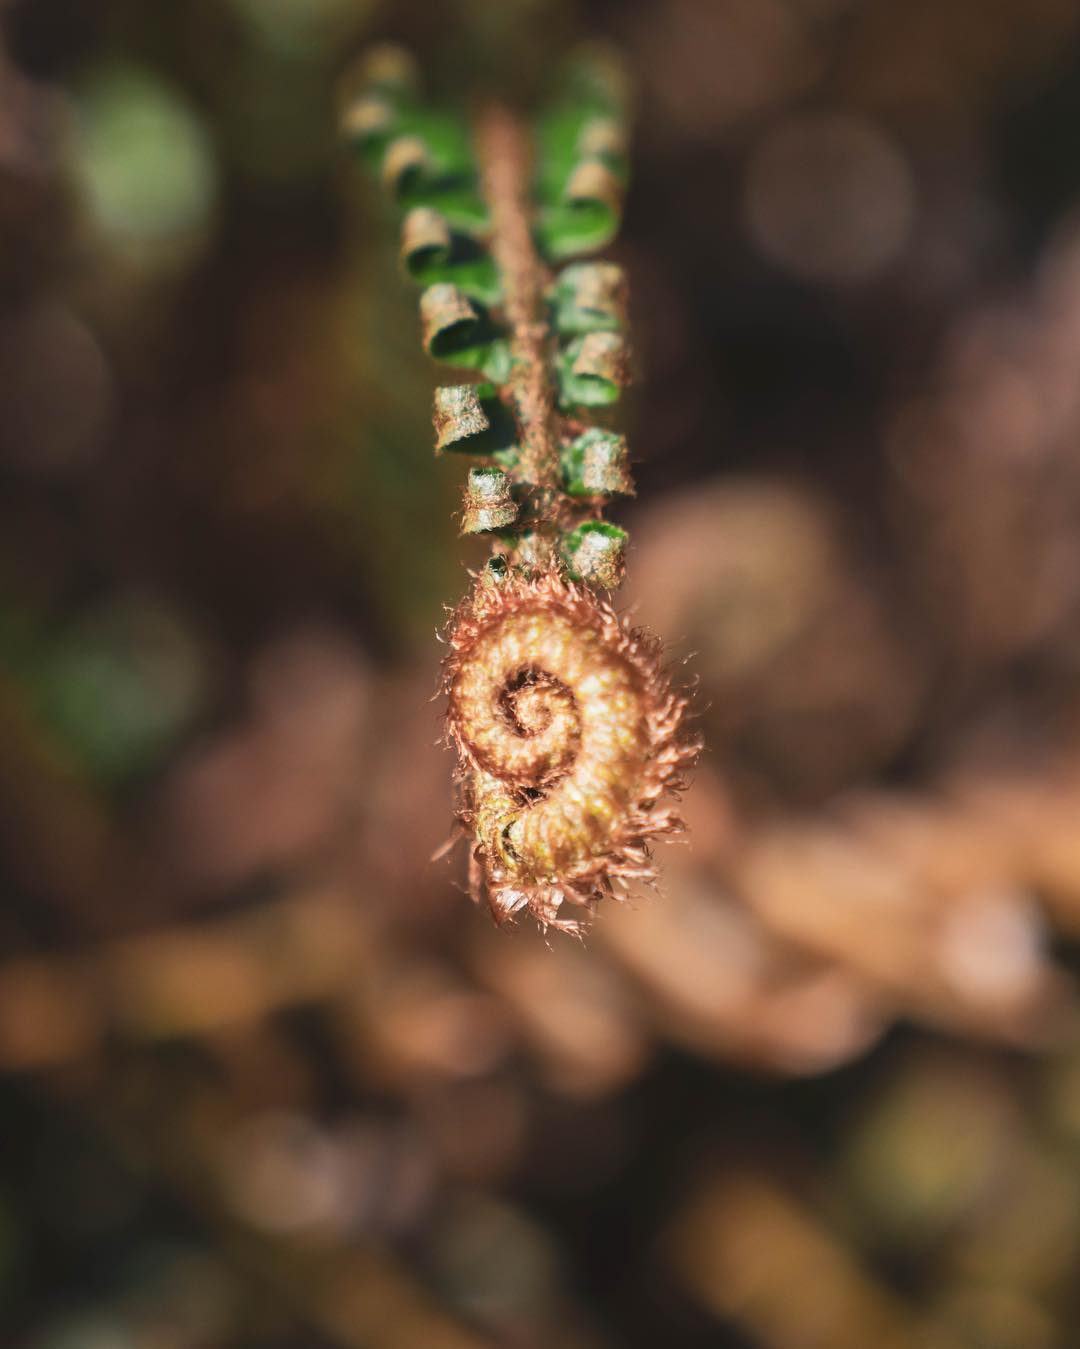 A spiral flower called the sword fern hangs at the end of its green stalk